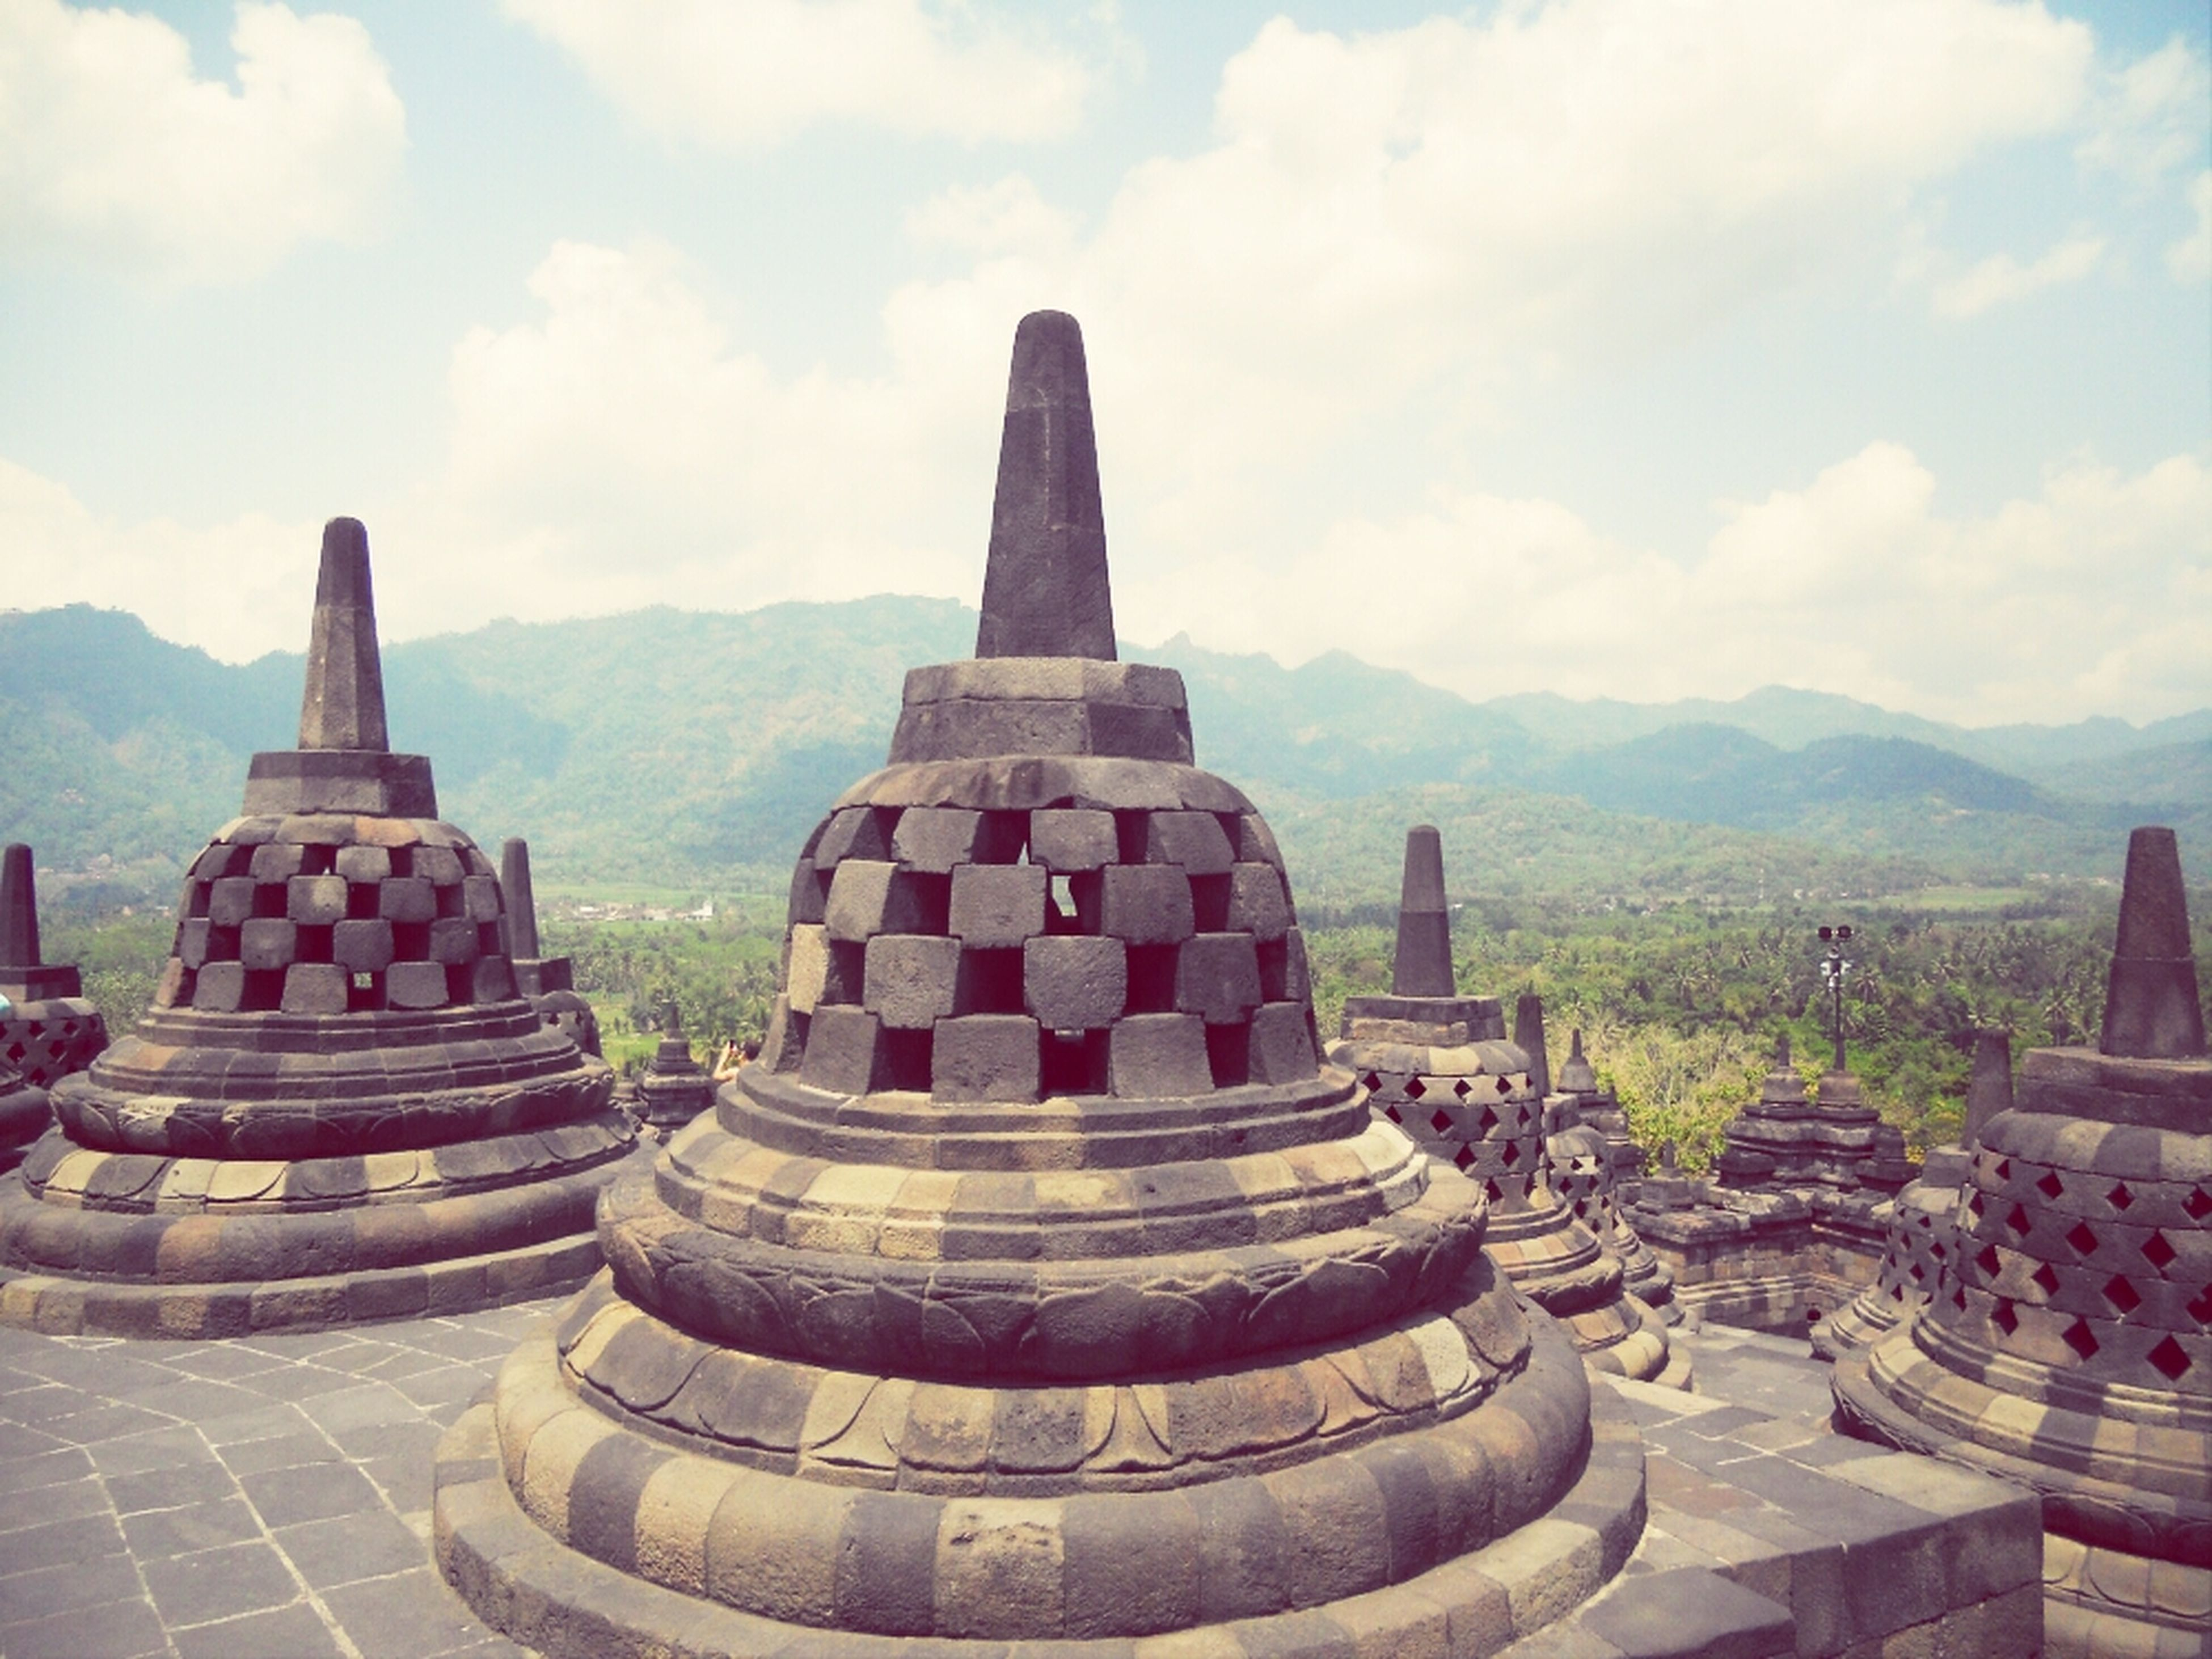 religion, sky, spirituality, temple - building, famous place, travel destinations, mountain, place of worship, tourism, stupa, ancient, culture, travel, history, ancient civilization, cloud - sky, cultures, tranquility, stone material